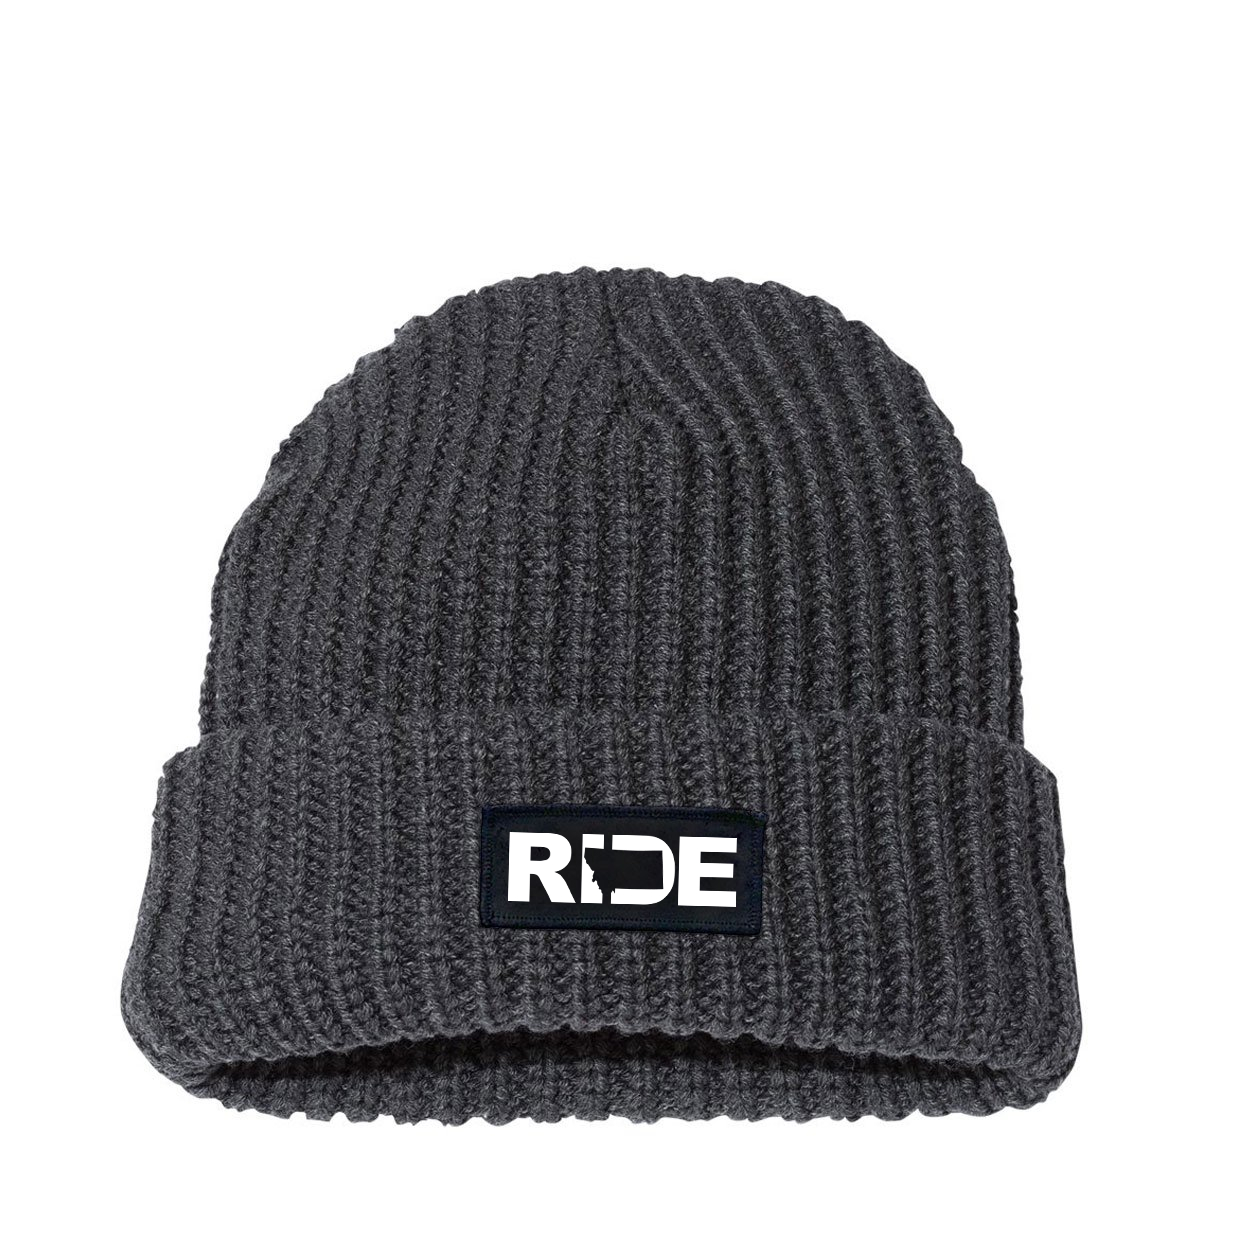 Ride Montana Night Out Woven Patch Roll Up Jumbo Chunky Knit Beanie Charcoal (White Logo)